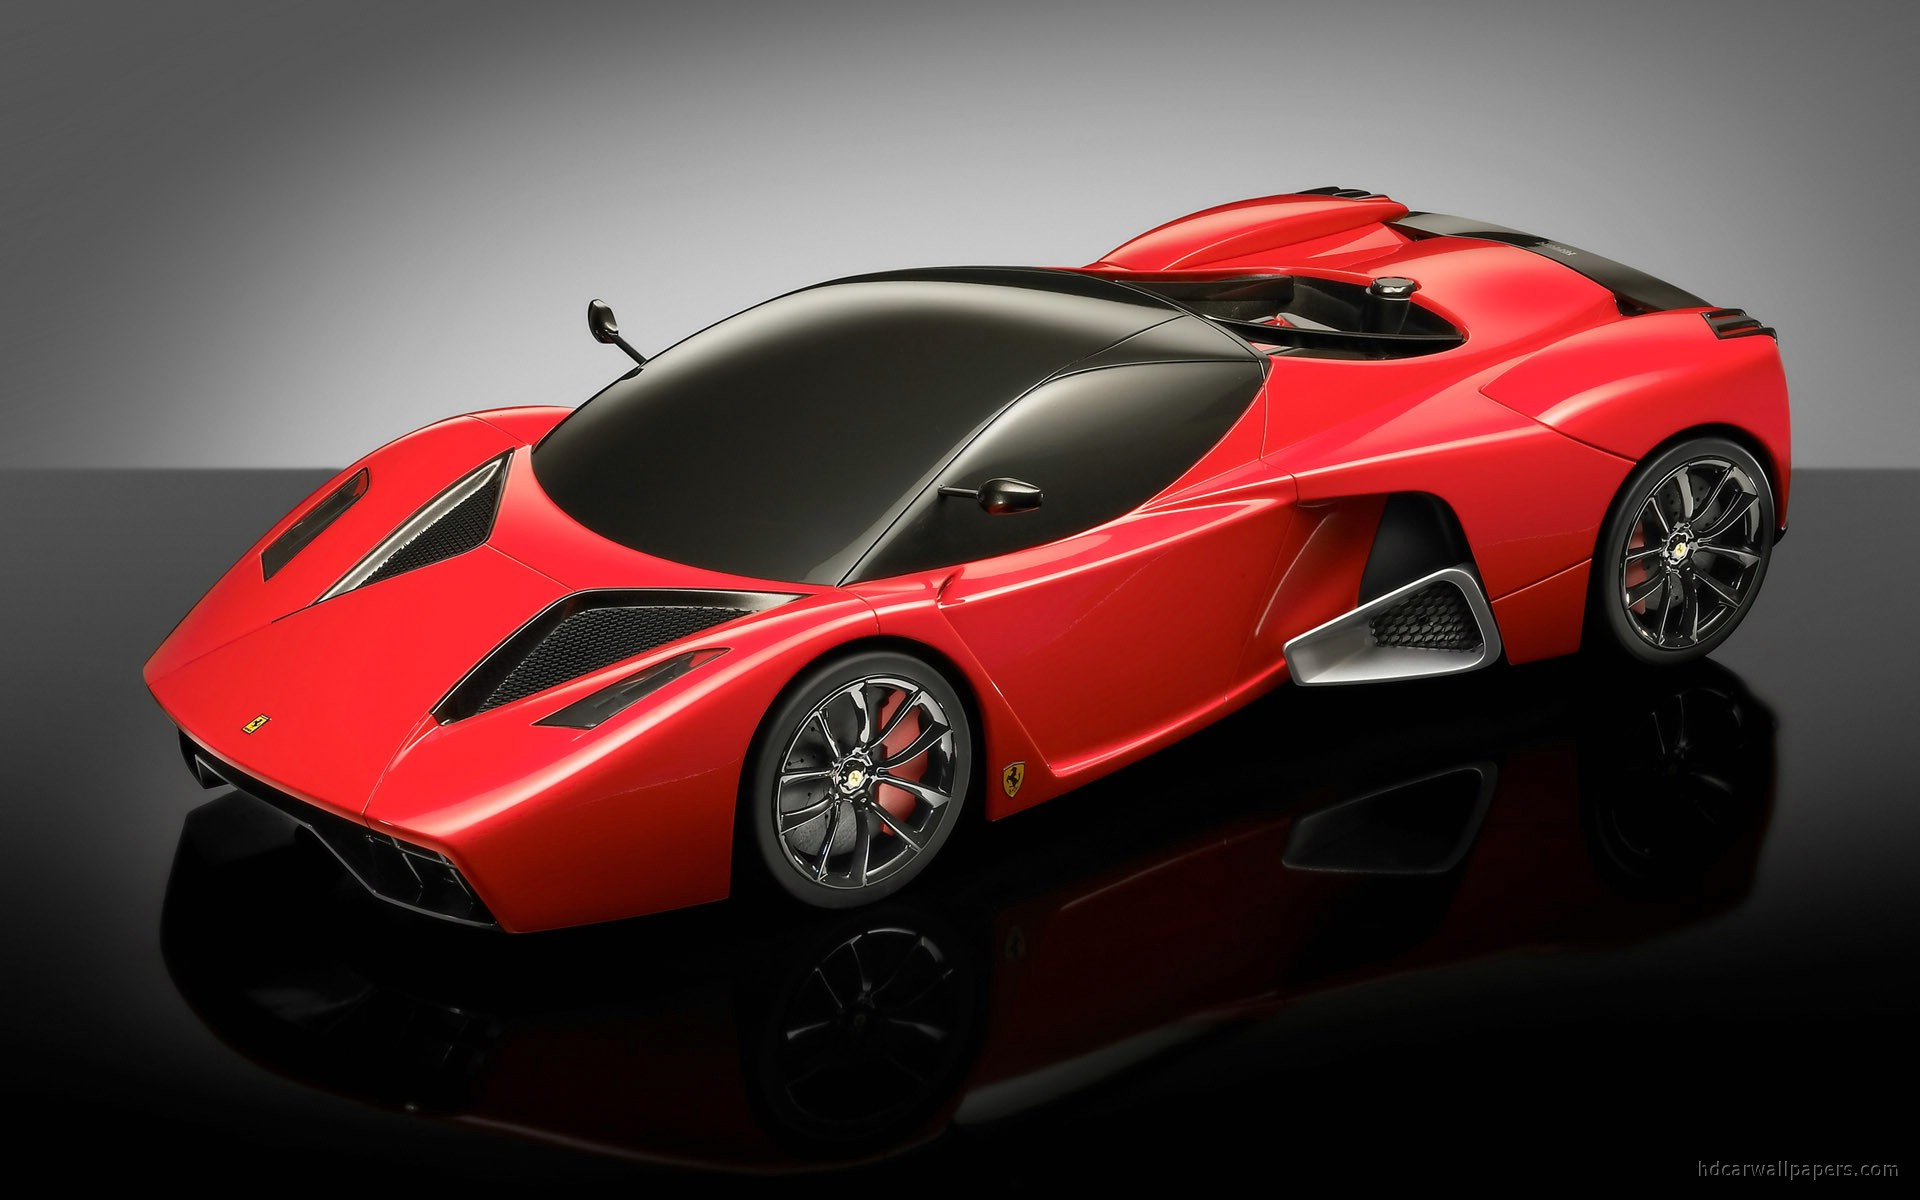 Design Concepts Wallpaper : Ferrari concept wallpaper hd car wallpapers